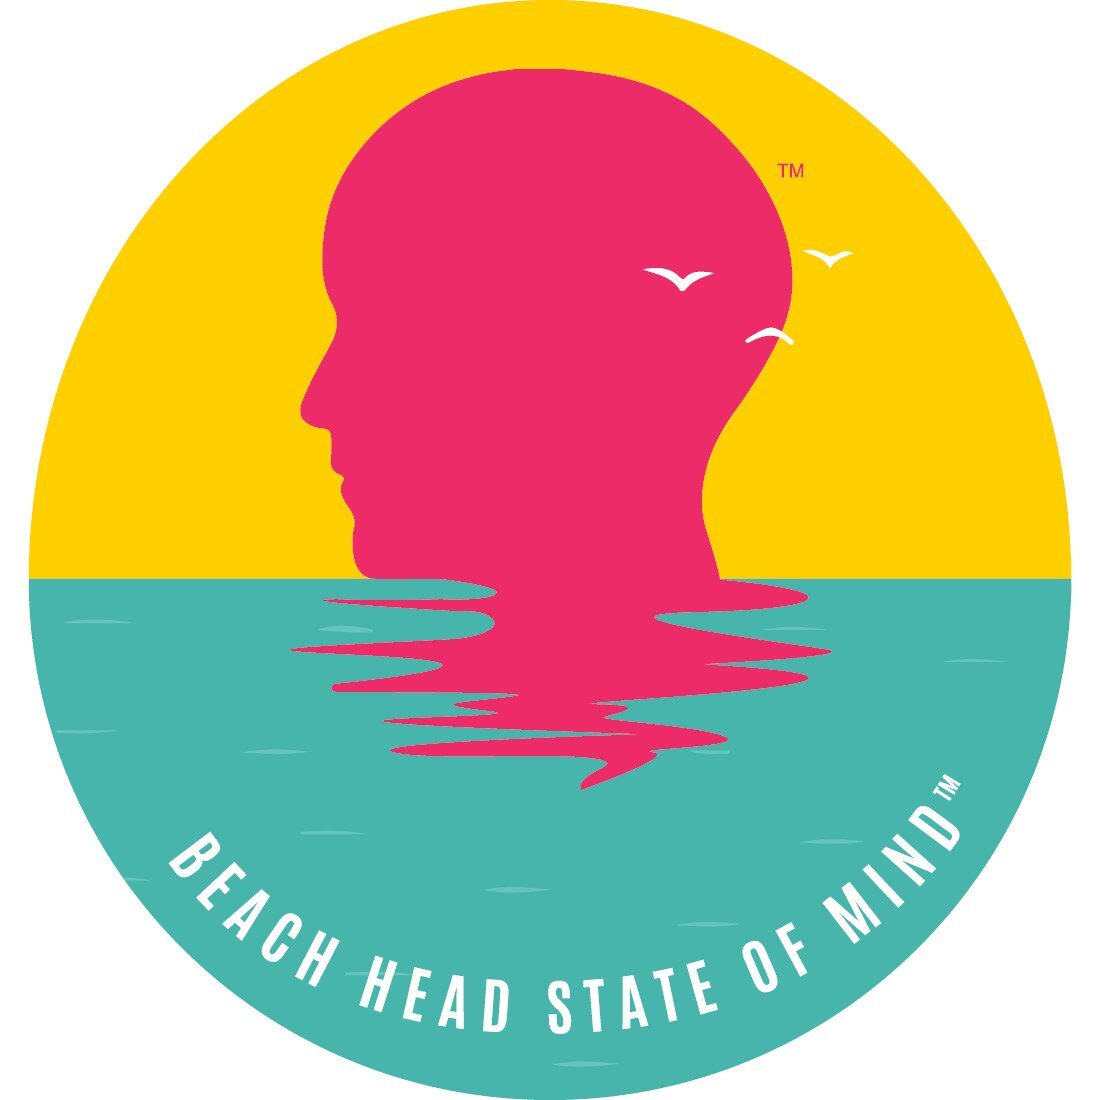 Beach_Head_Color3_Decal_1024x1024@2x.jpg